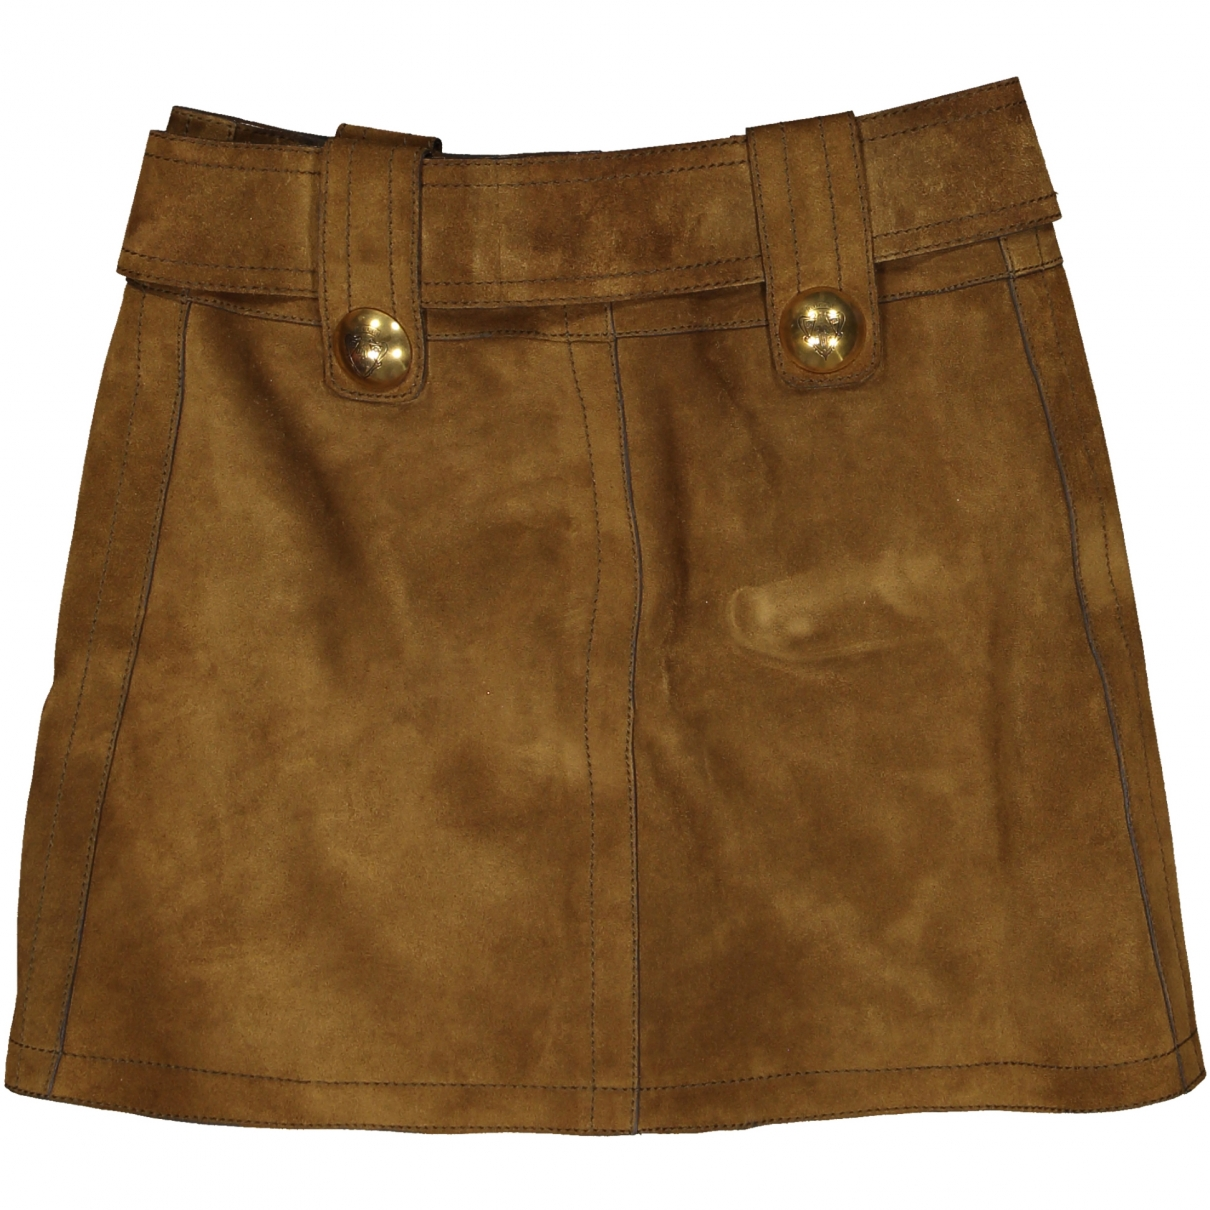 Gucci \N Camel Suede skirt for Women 38 IT